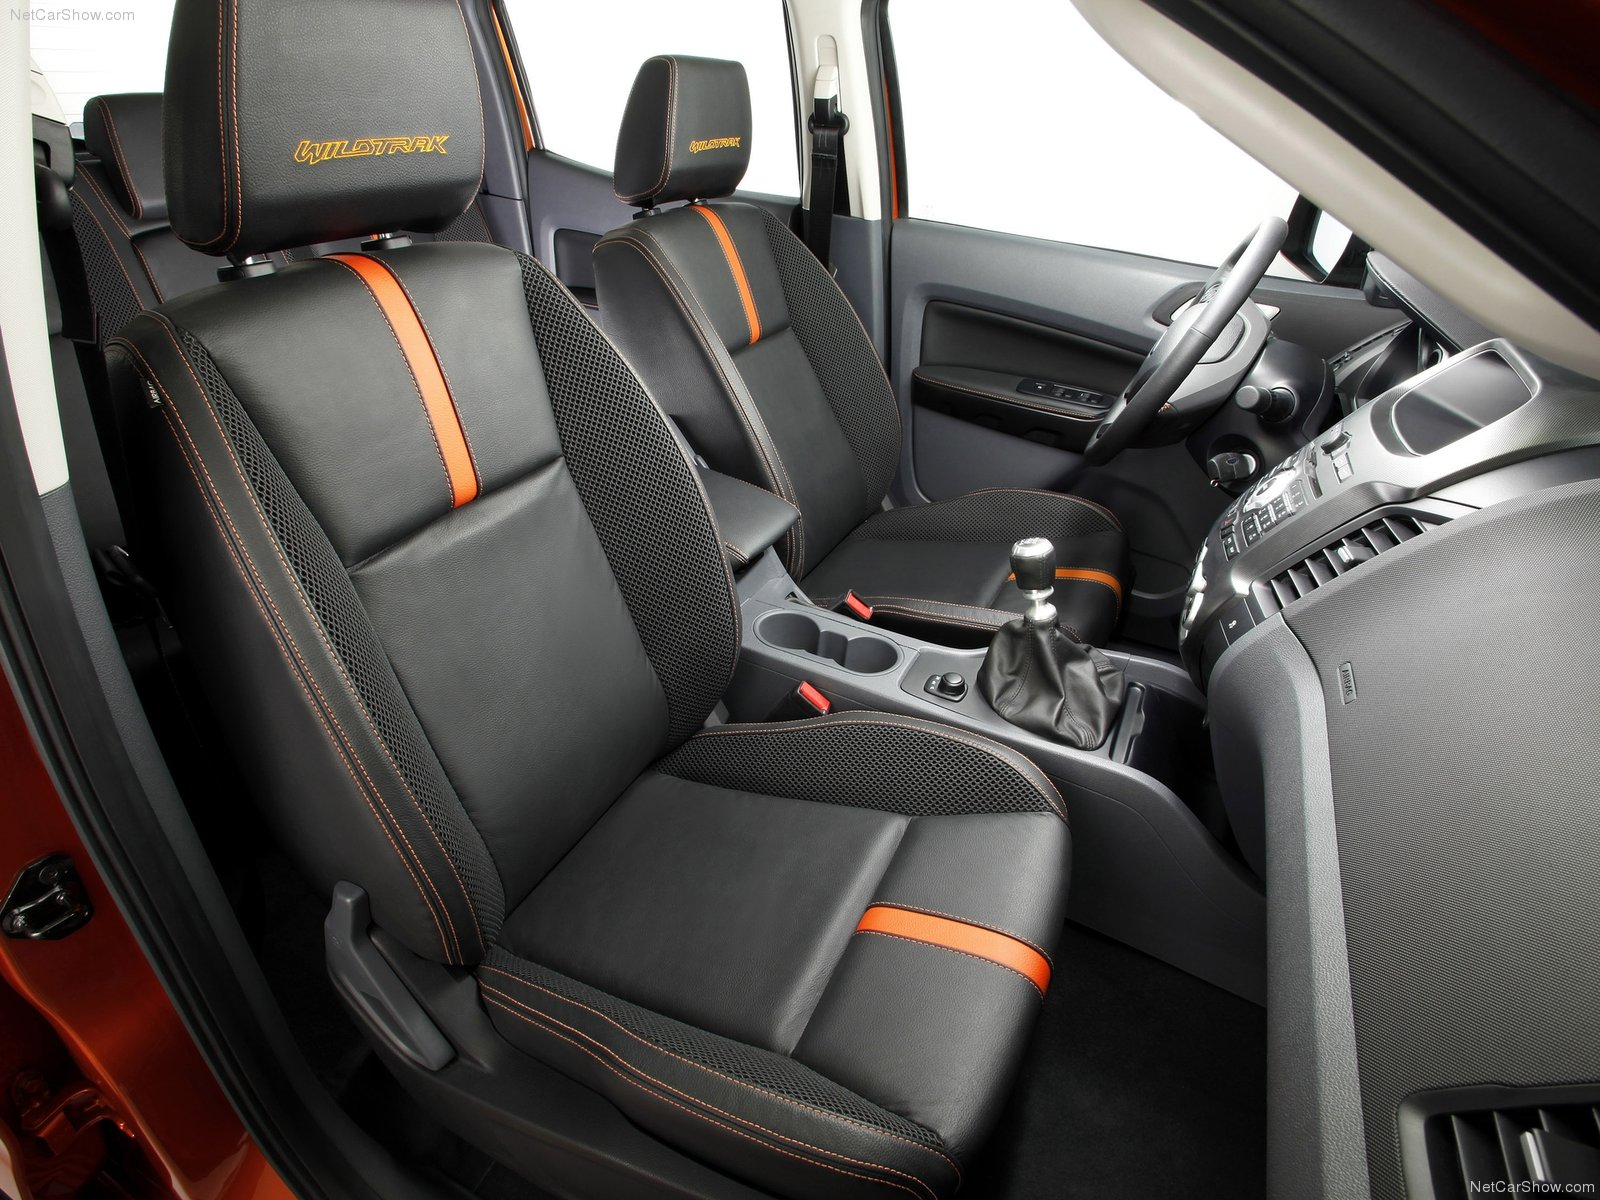 Ford Ranger Wildtrak photos - PhotoGallery with 13 pics| CarsBase.com